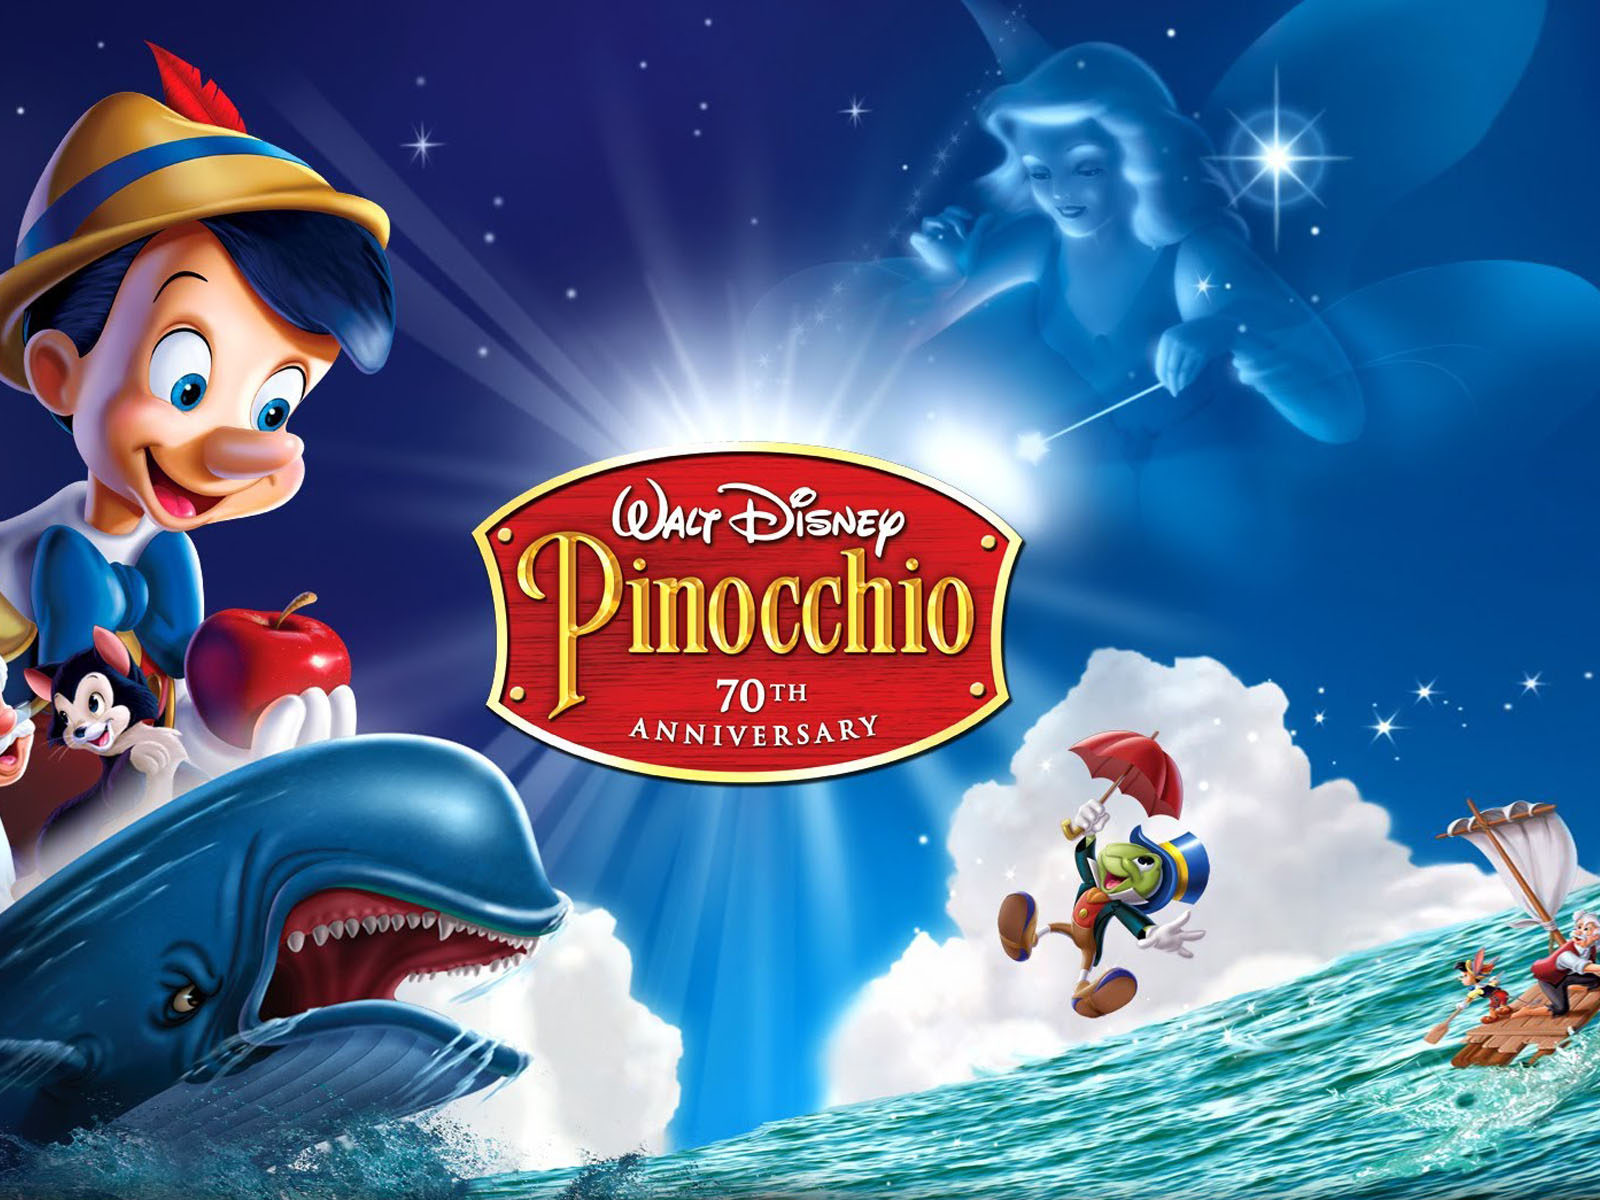 Cartoon Wallpaper Iphone X Walt Disney Pinocchio First Time Ever On 2 Disc Platinum